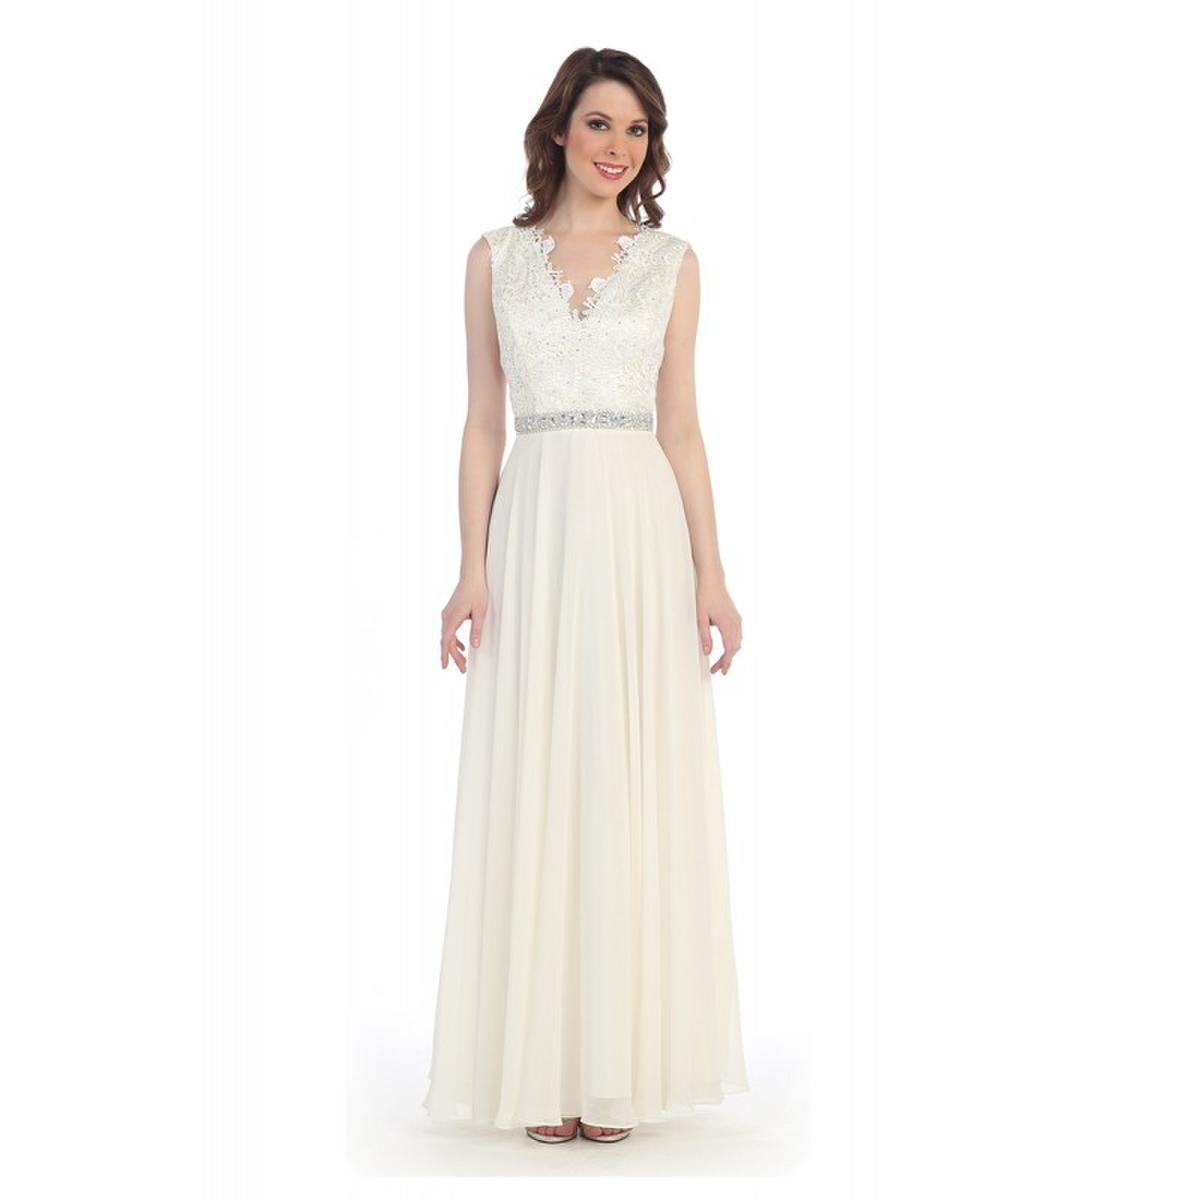 CINDY COLLECTION USA - Chiffon Beaded Waist V-Neck Gown